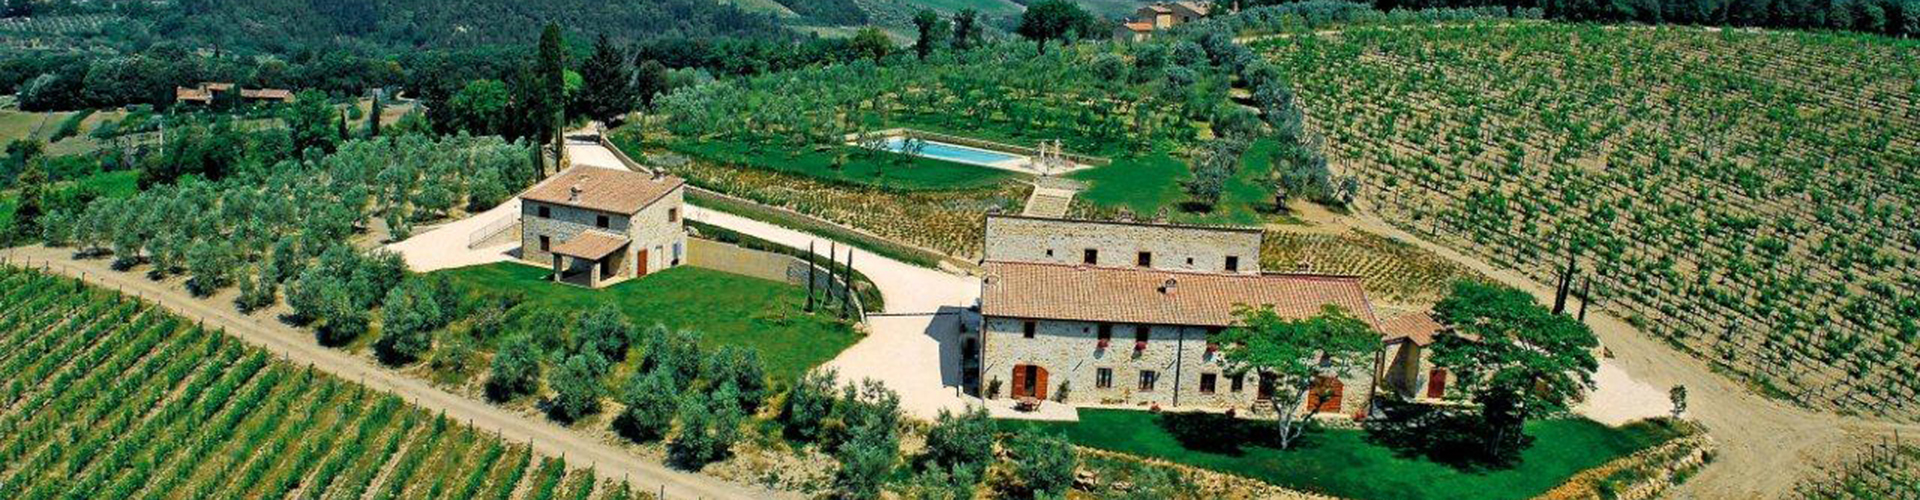 AGRITURISMO IL CELLESE (2)